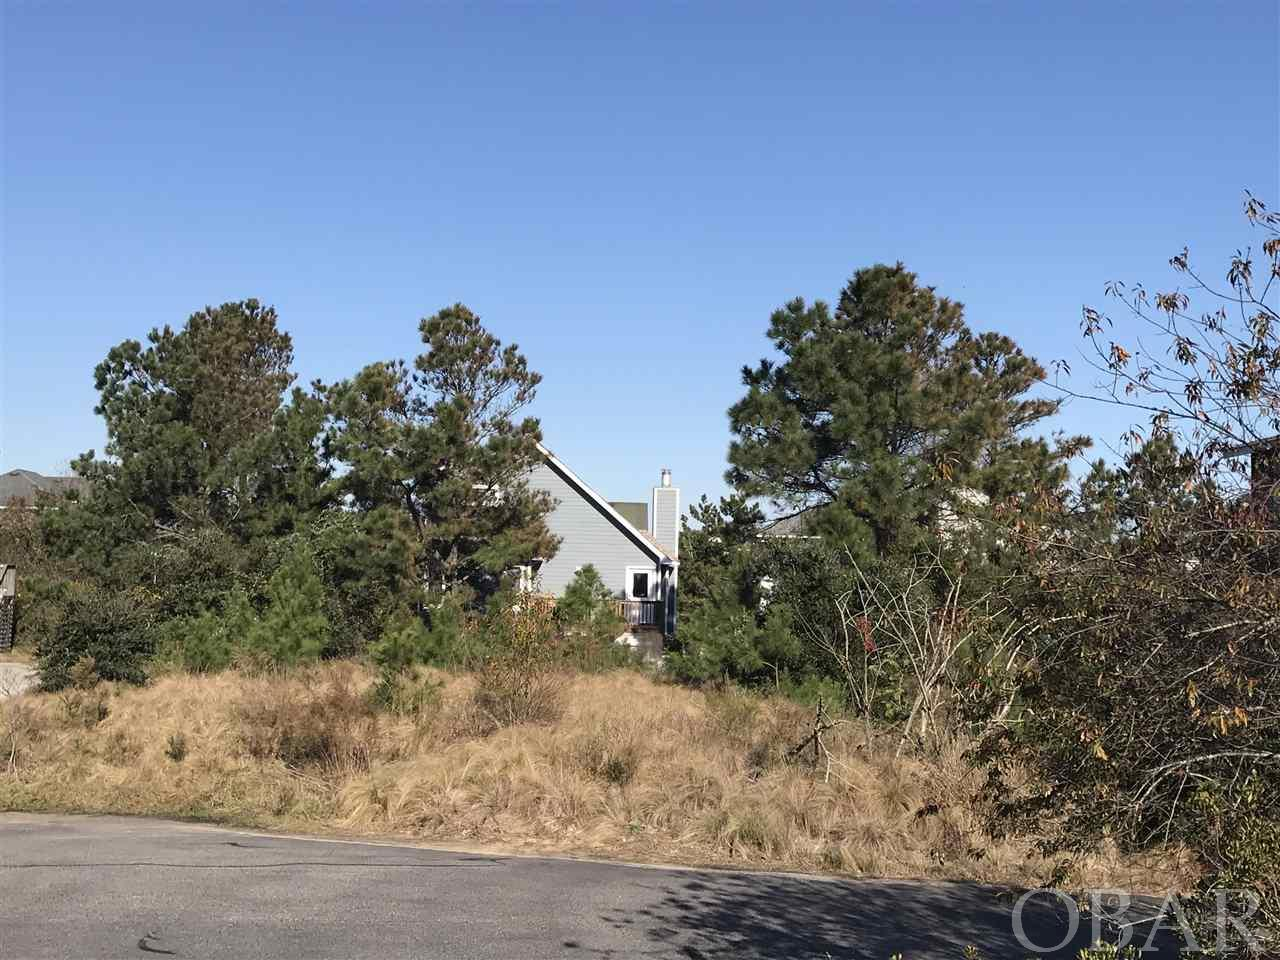 765 Fishermans Court,Corolla,NC 27927,Lots/land,Fishermans Court,97234